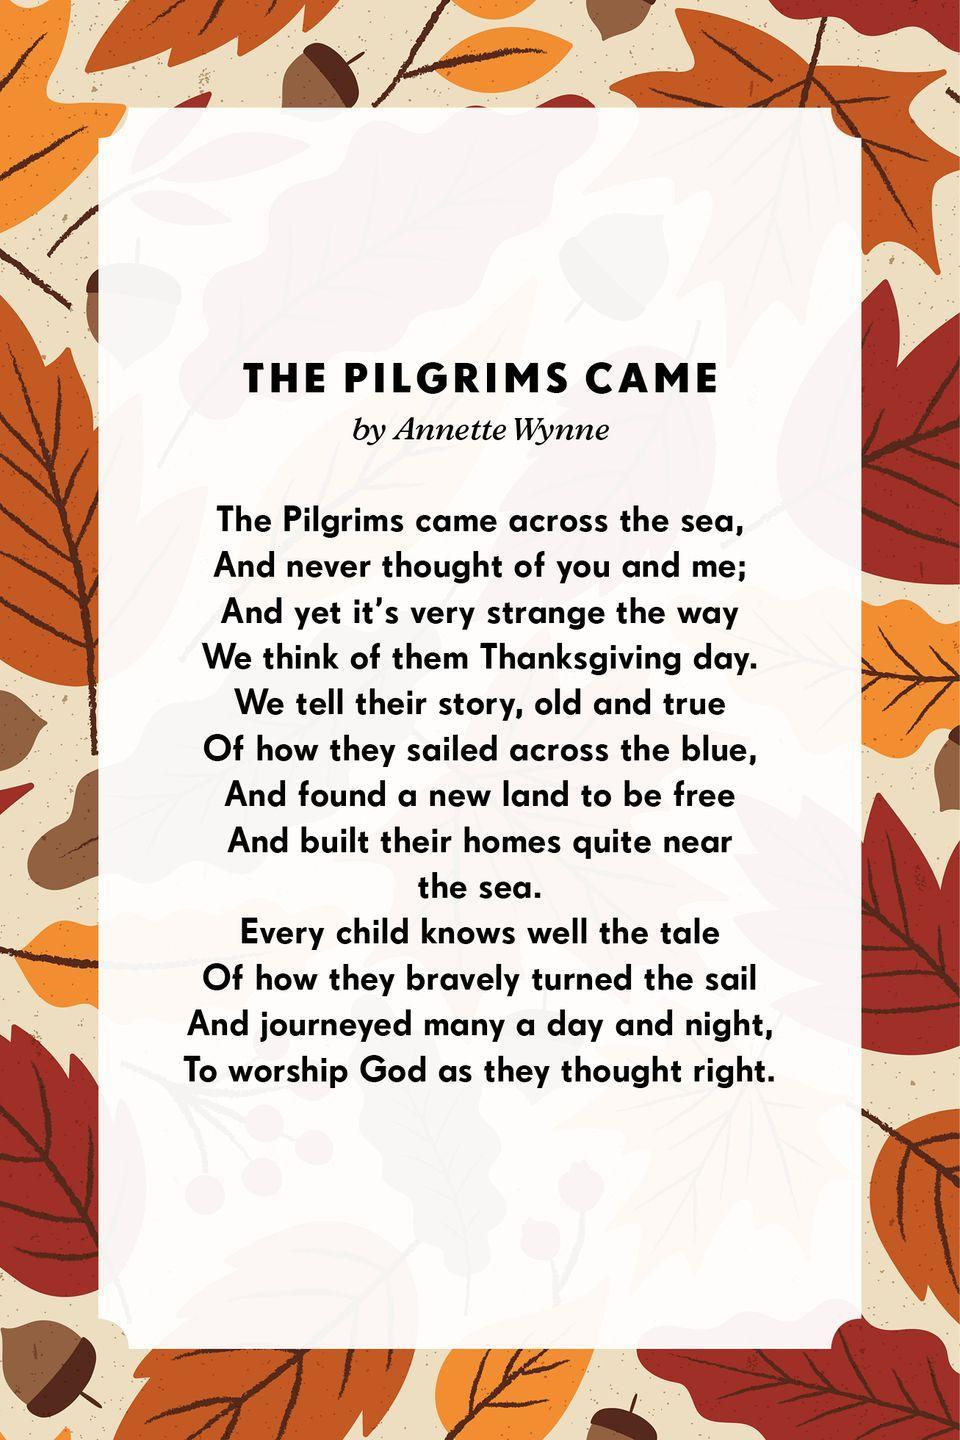 """<p><strong>The Pilgrims Came</strong></p><p>The Pilgrims came across the sea,<br>And never thought of you and me;<br>And yet it's very strange the way<br>We think of them <a href=""""https://www.poemofquotes.com/articles/category/holiday-articles/thanksgiving-articles"""" rel=""""nofollow noopener"""" target=""""_blank"""" data-ylk=""""slk:Thanksgiving"""" class=""""link rapid-noclick-resp"""">Thanksgiving</a> day.<br>We tell their story, old and true<br>Of how they sailed across the blue,<br>And found a new land to be free<br>And built their homes quite near the sea.<br>Every child knows well the tale<br>Of how they bravely turned the sail<br>And journeyed many a day and night,<br>To worship God as they thought right.</p>"""